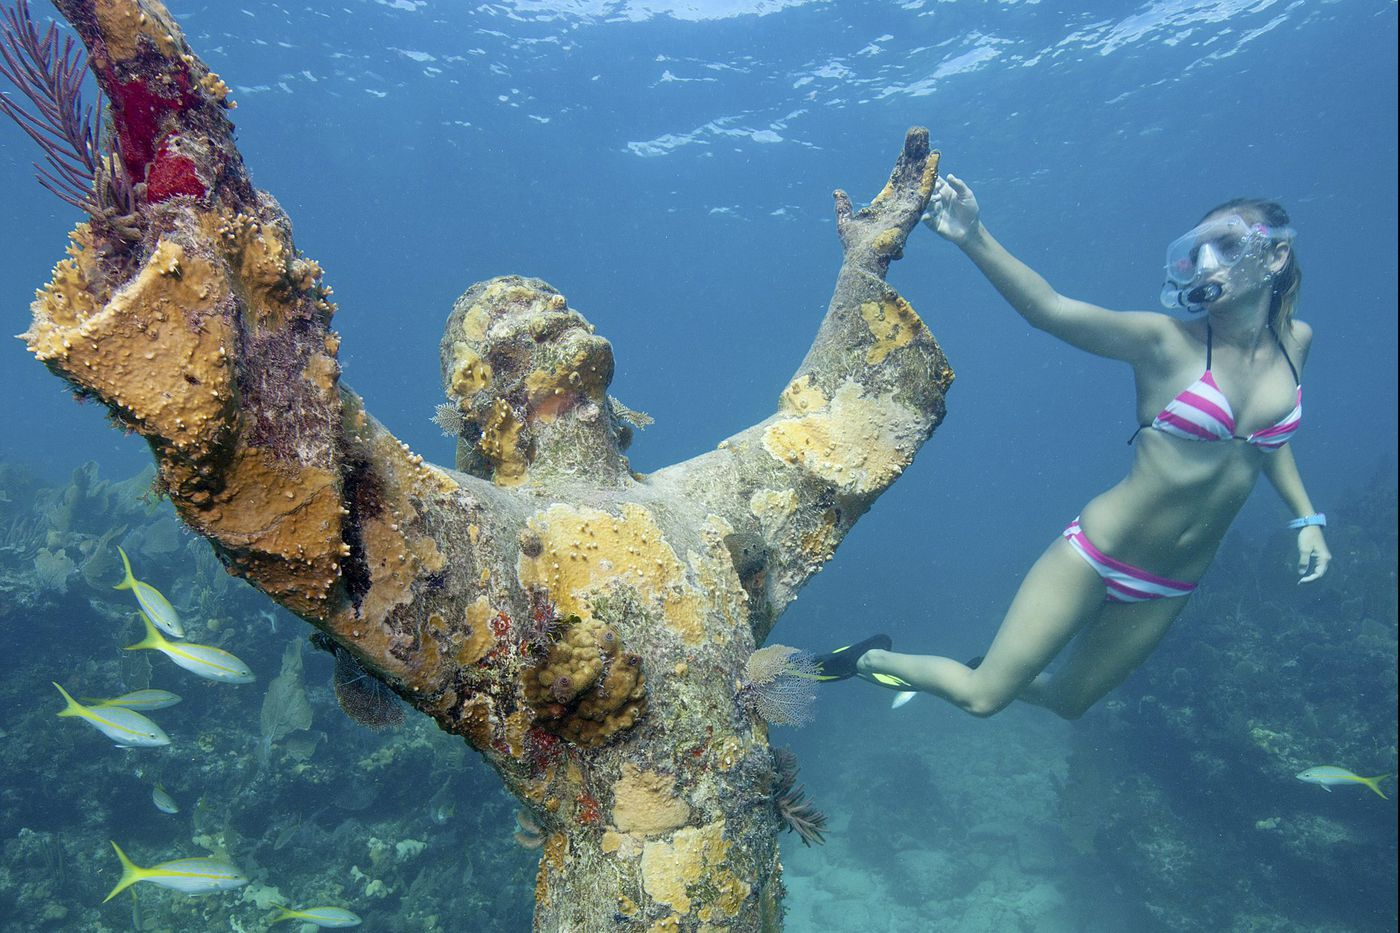 In Key Largo, coral reefs have benefited from hurricane